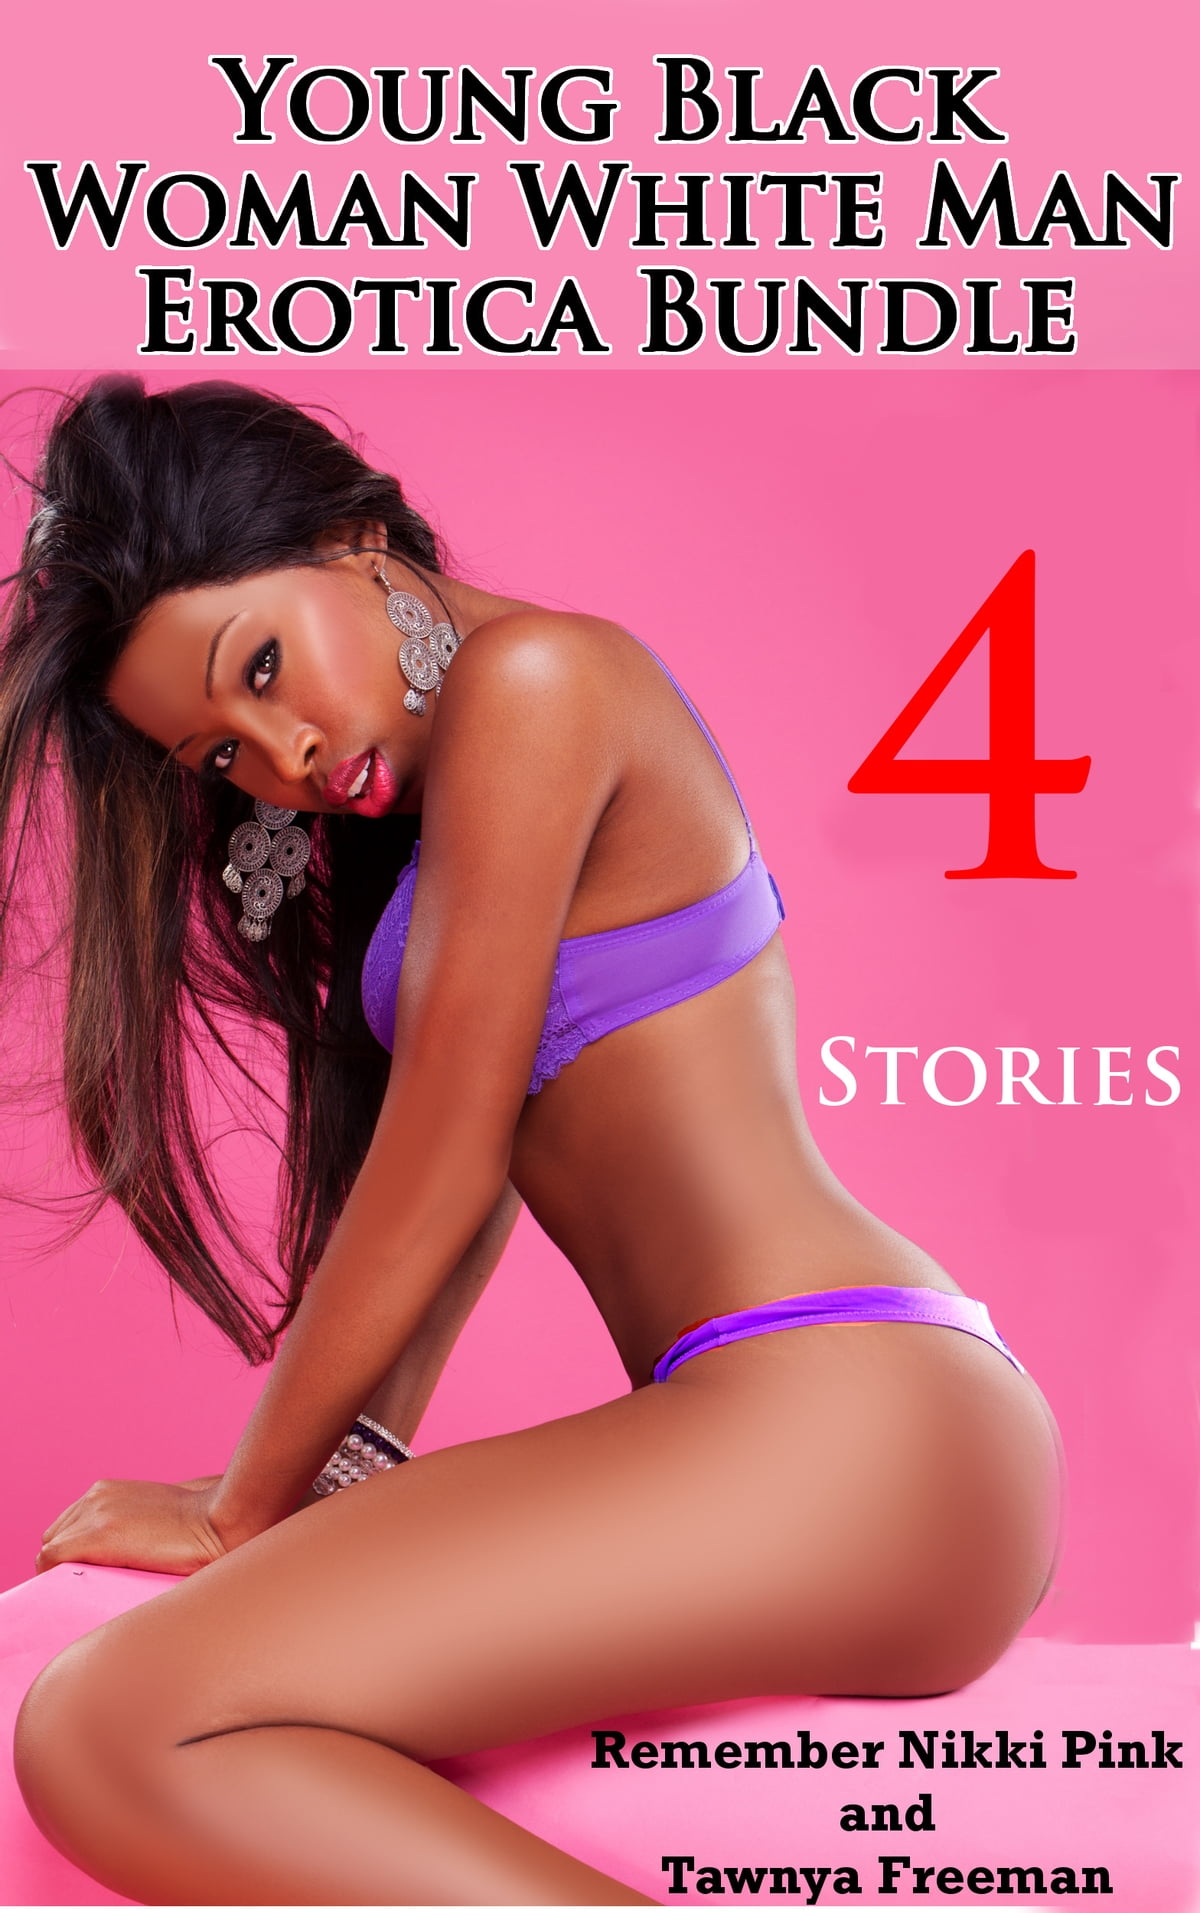 Impregnation Storys Classy young black woman white man erotica bundle 4 stories ebook